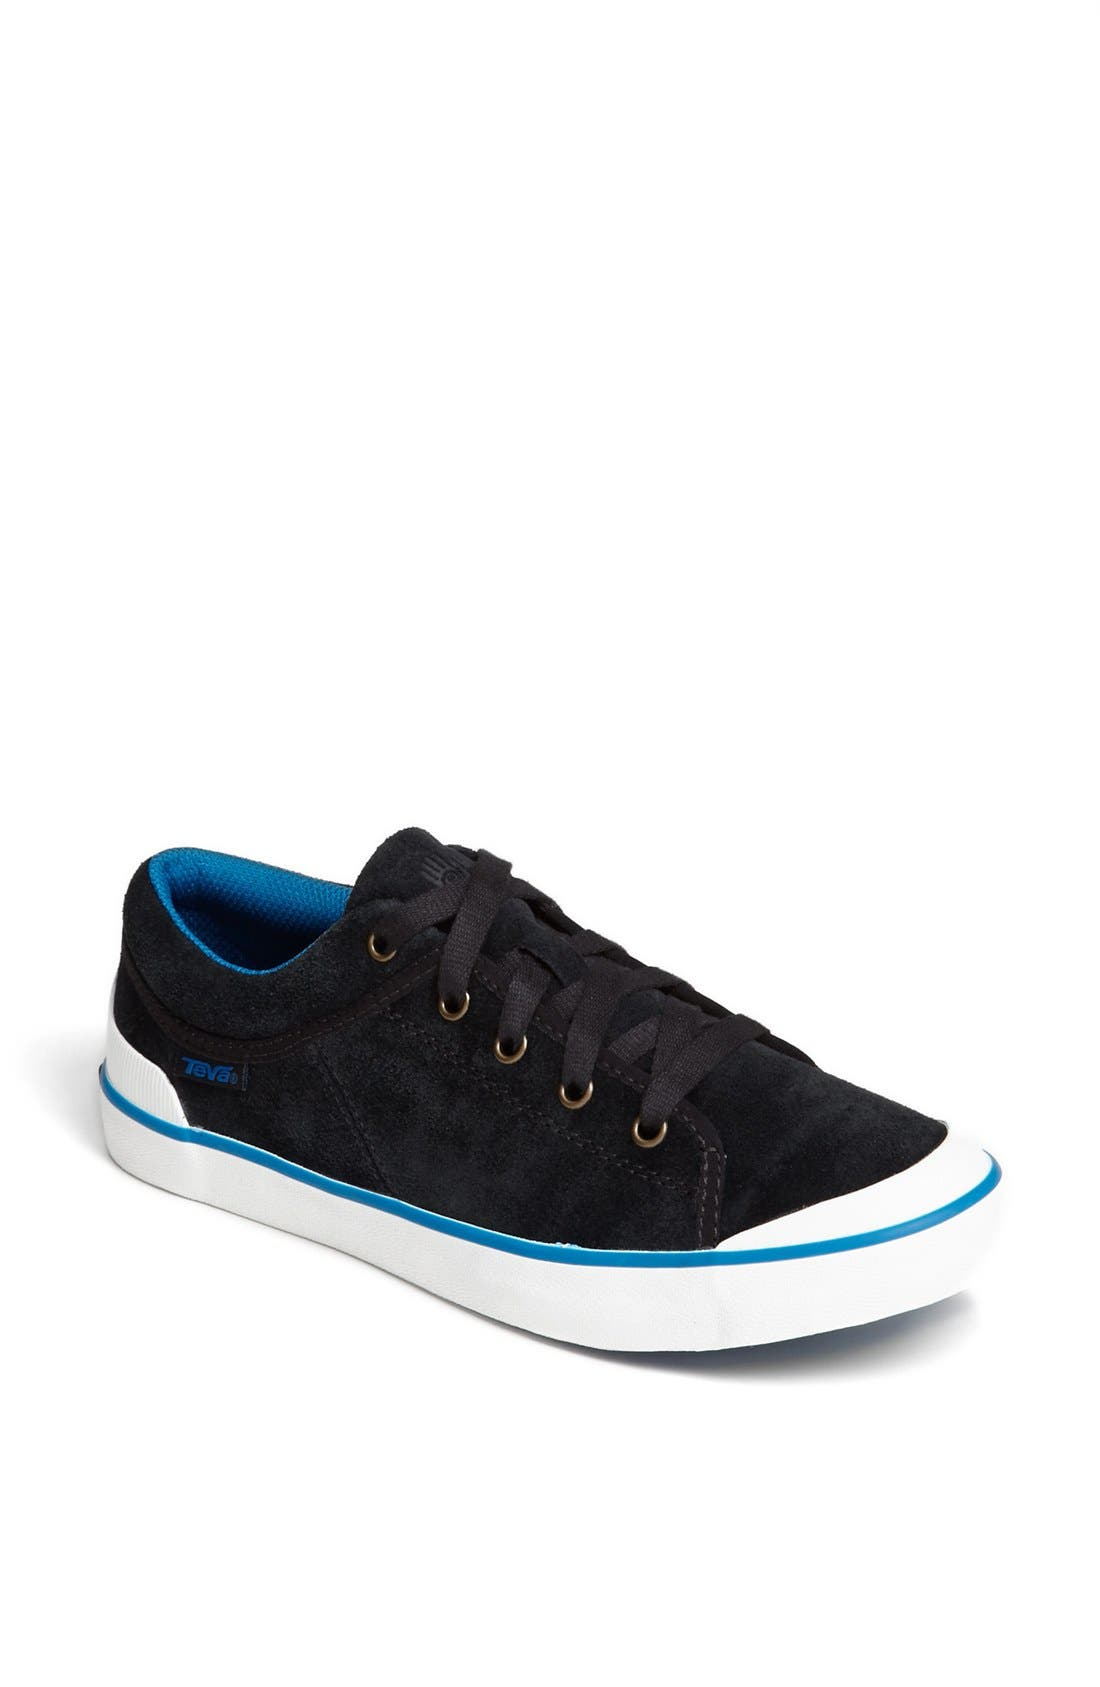 'Freewheel' Sneaker,                             Main thumbnail 1, color,                             Black/ Blue